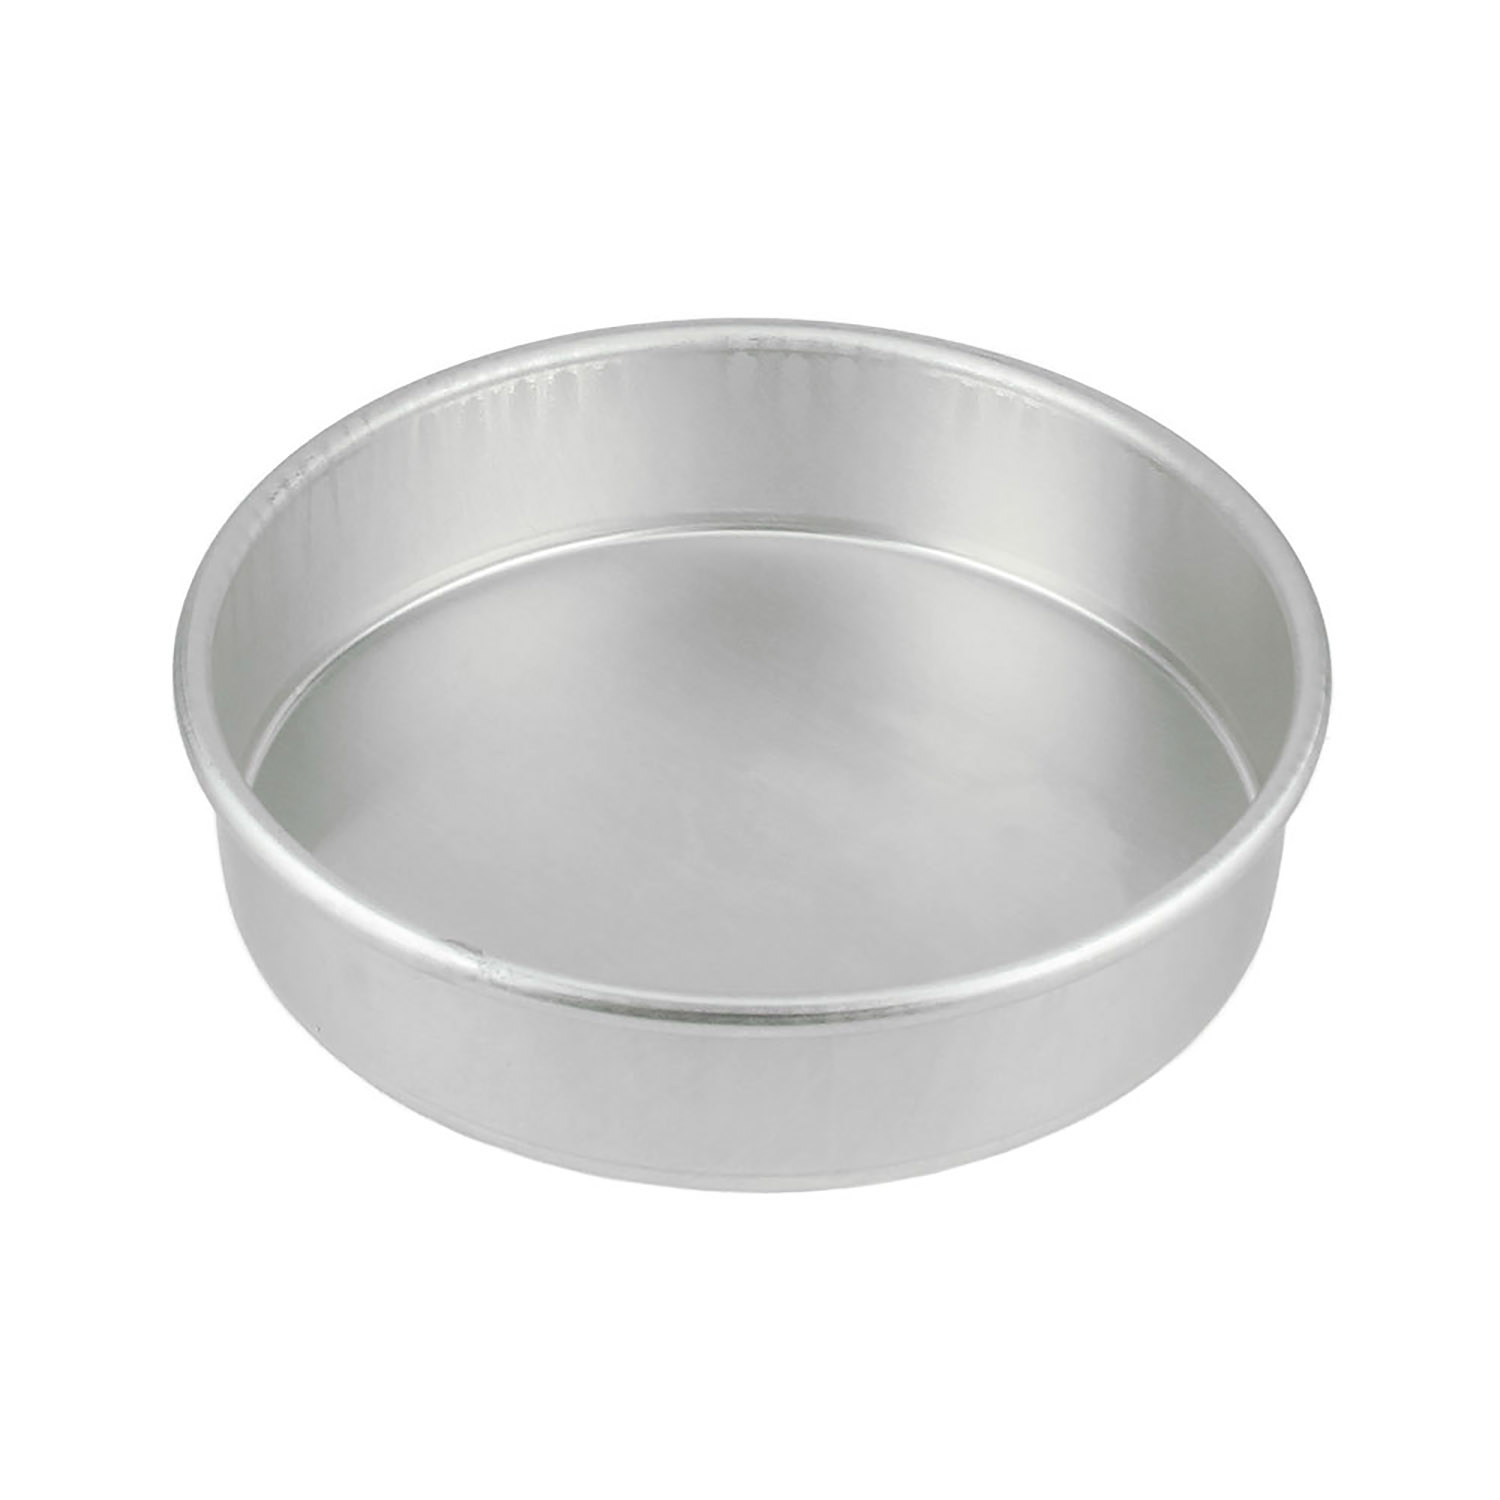 "9 x 2"" Magic Line Round Cake Pan"